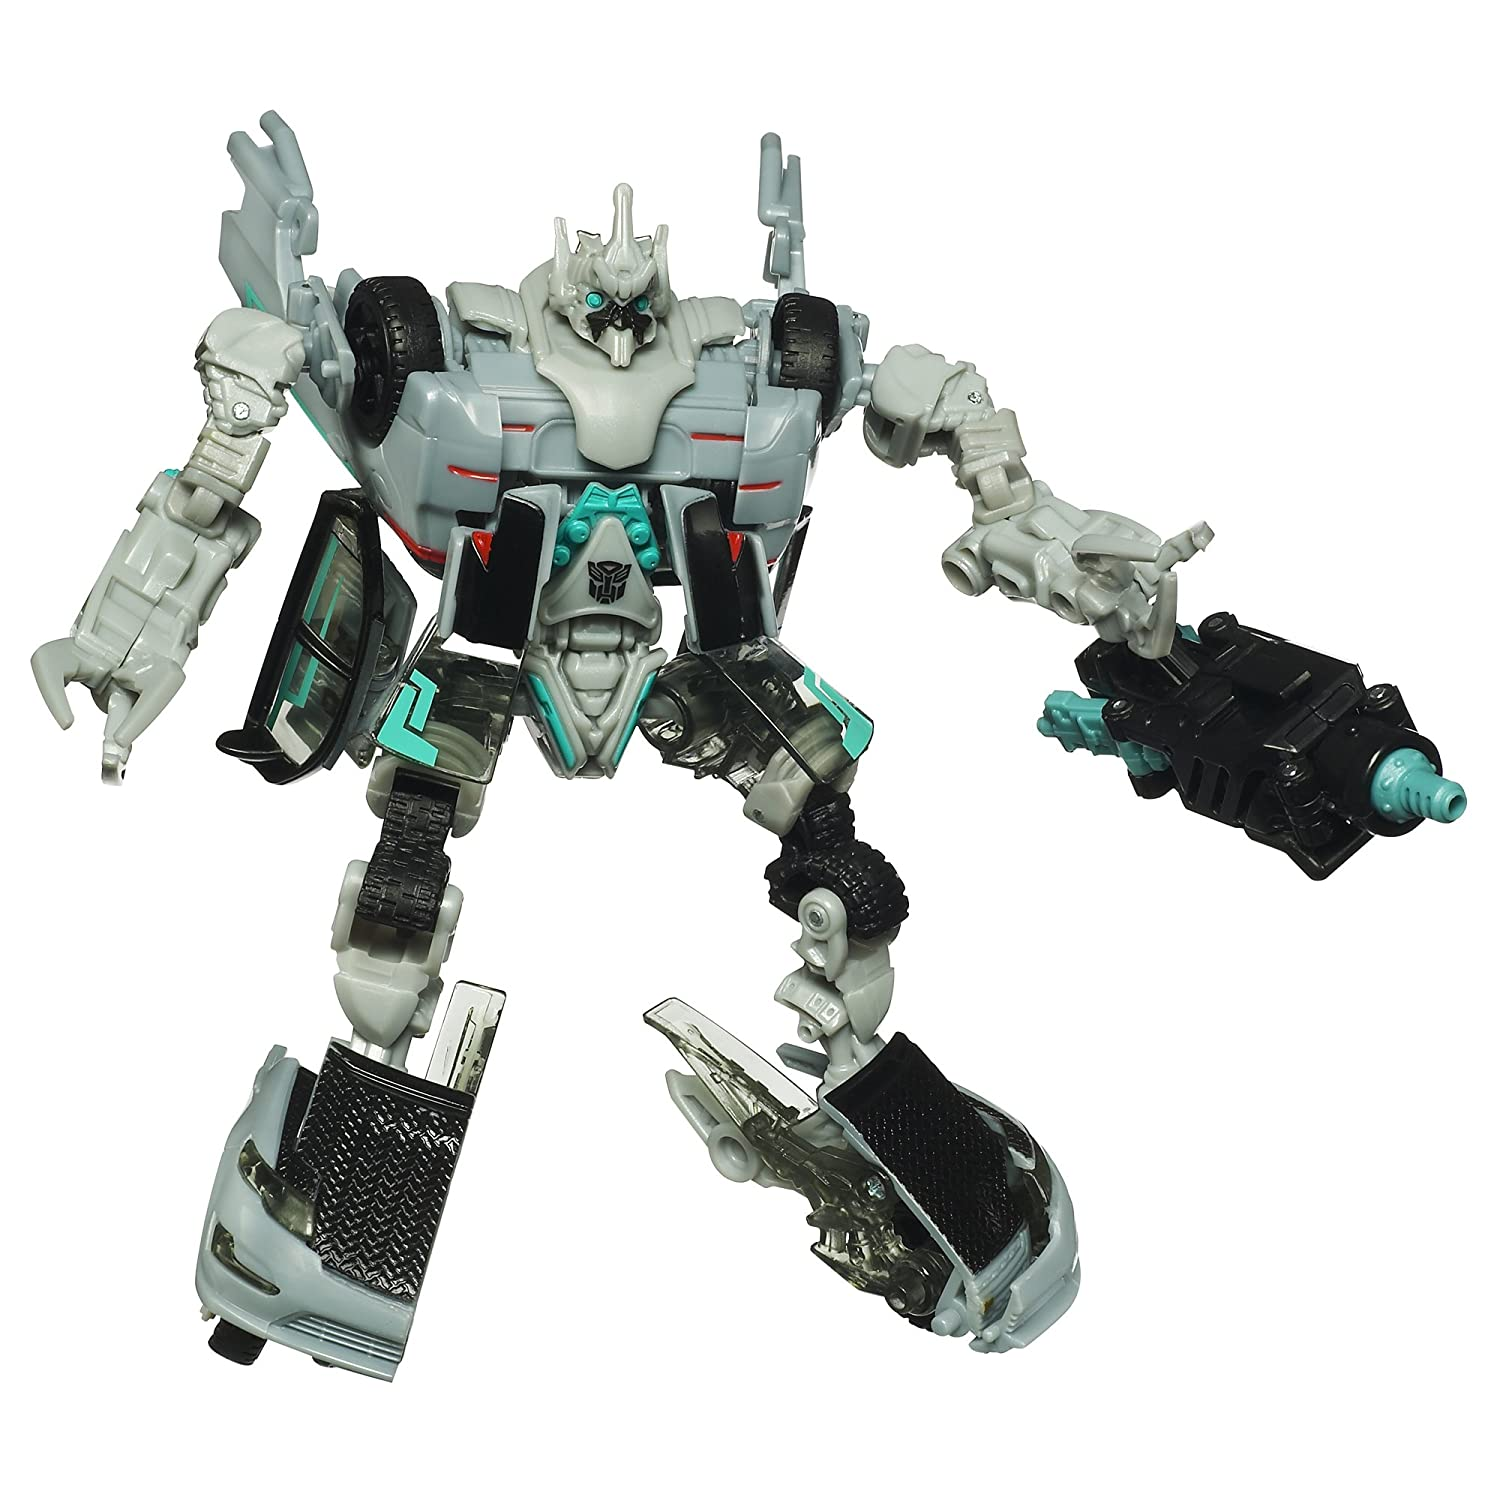 Transformers 3: Dark of the Moon Movie Deluxe Class Figura Jolt